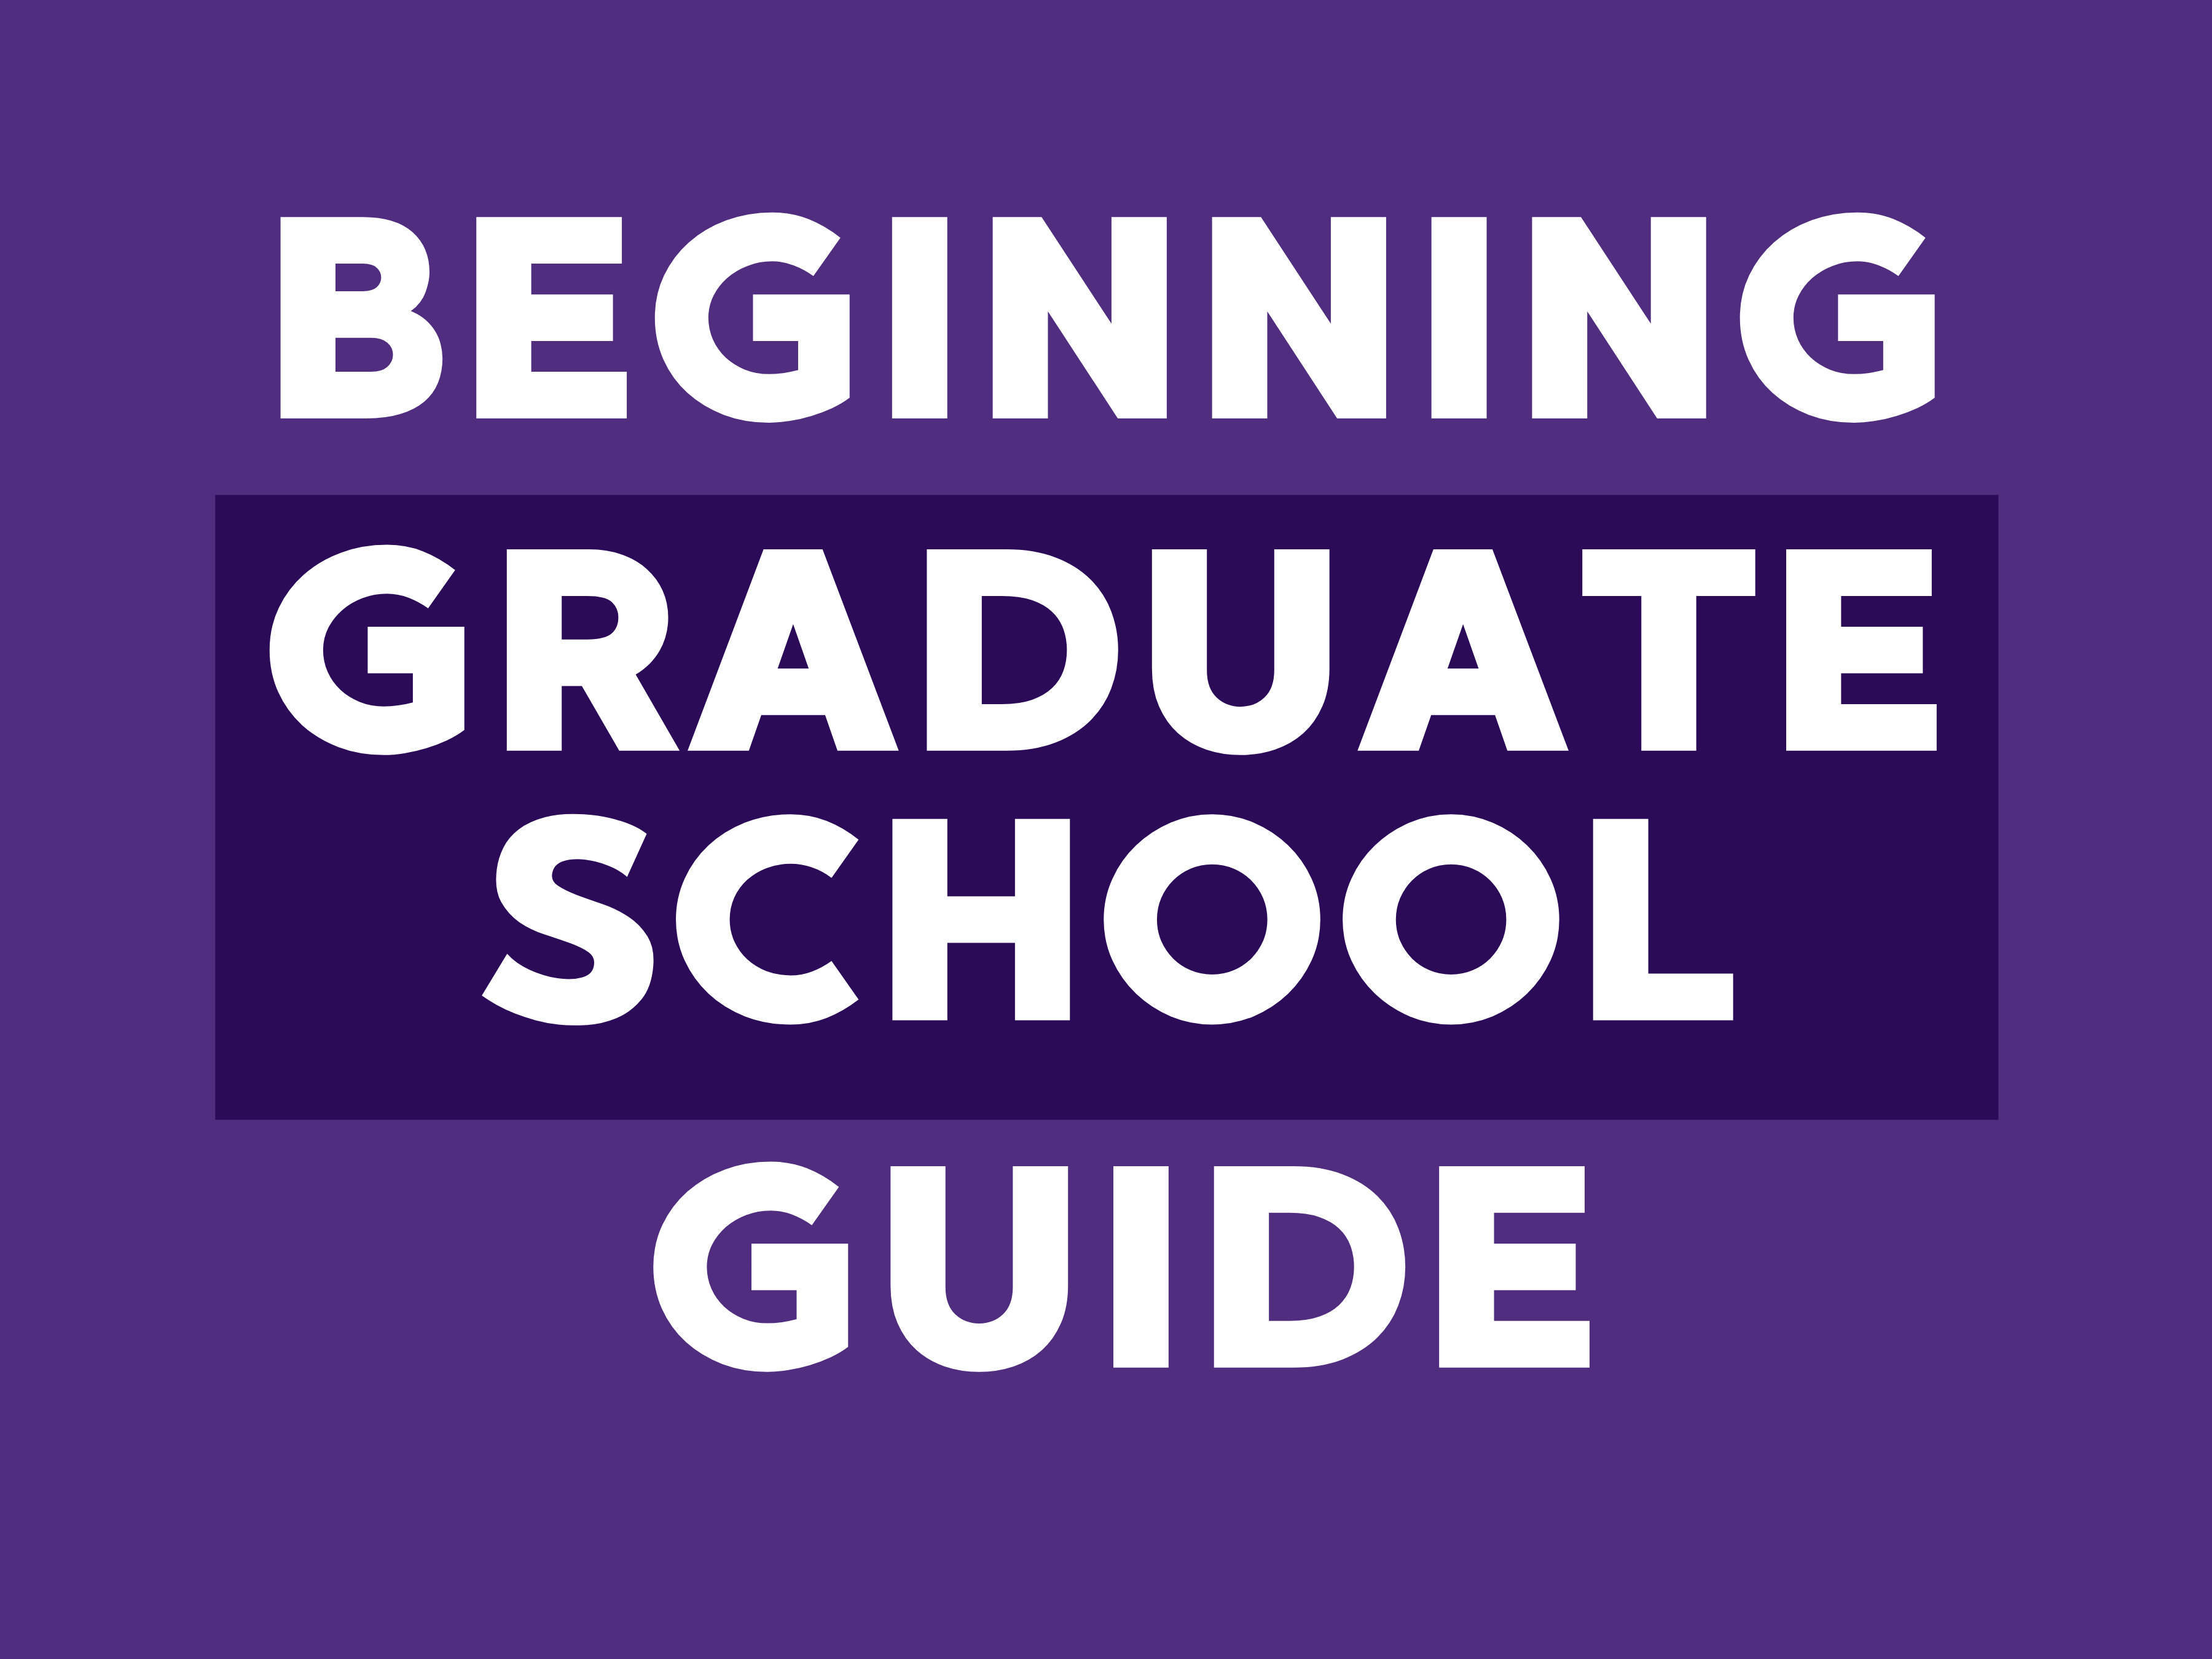 Beginning Graduate School Guide